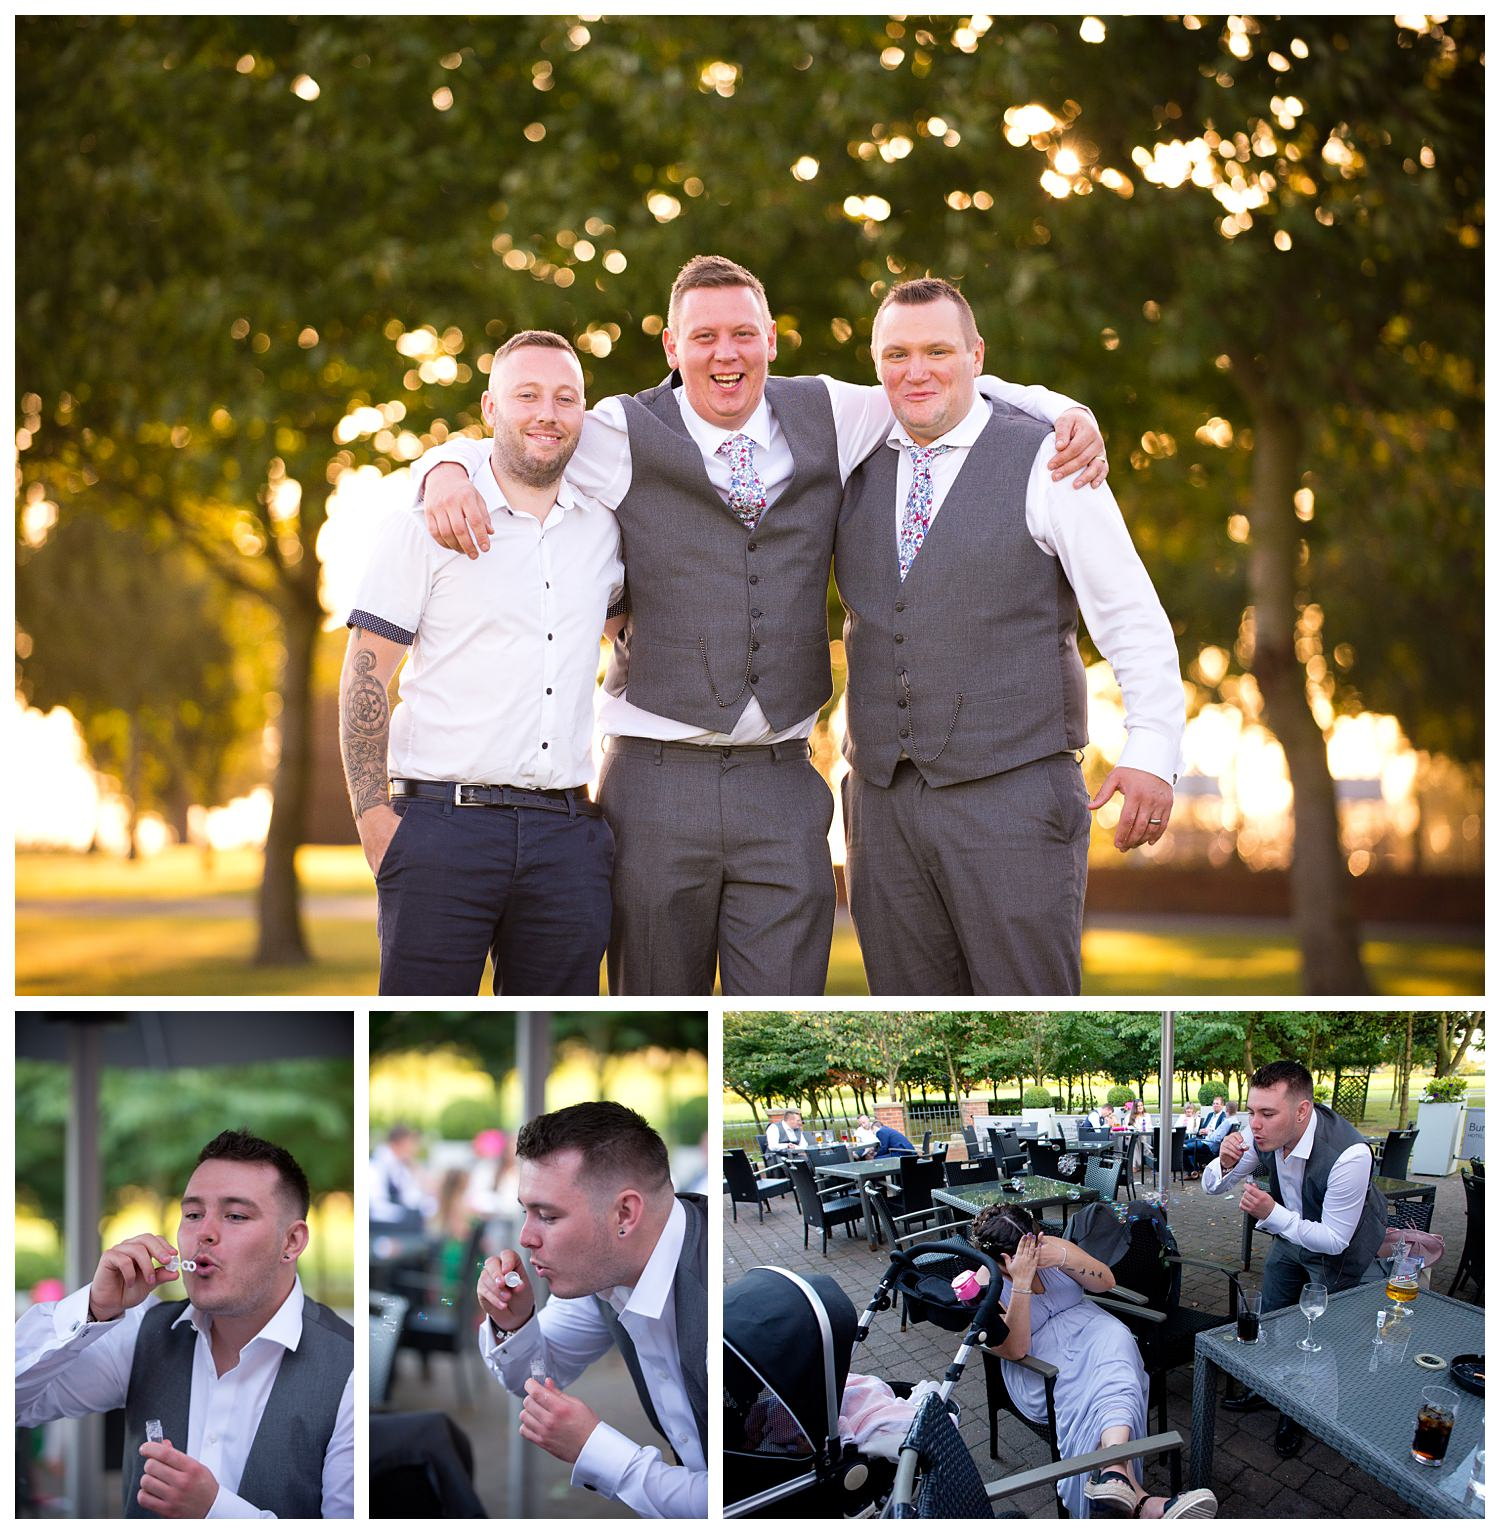 Burntwood-Court-Wedding-Photography_0033